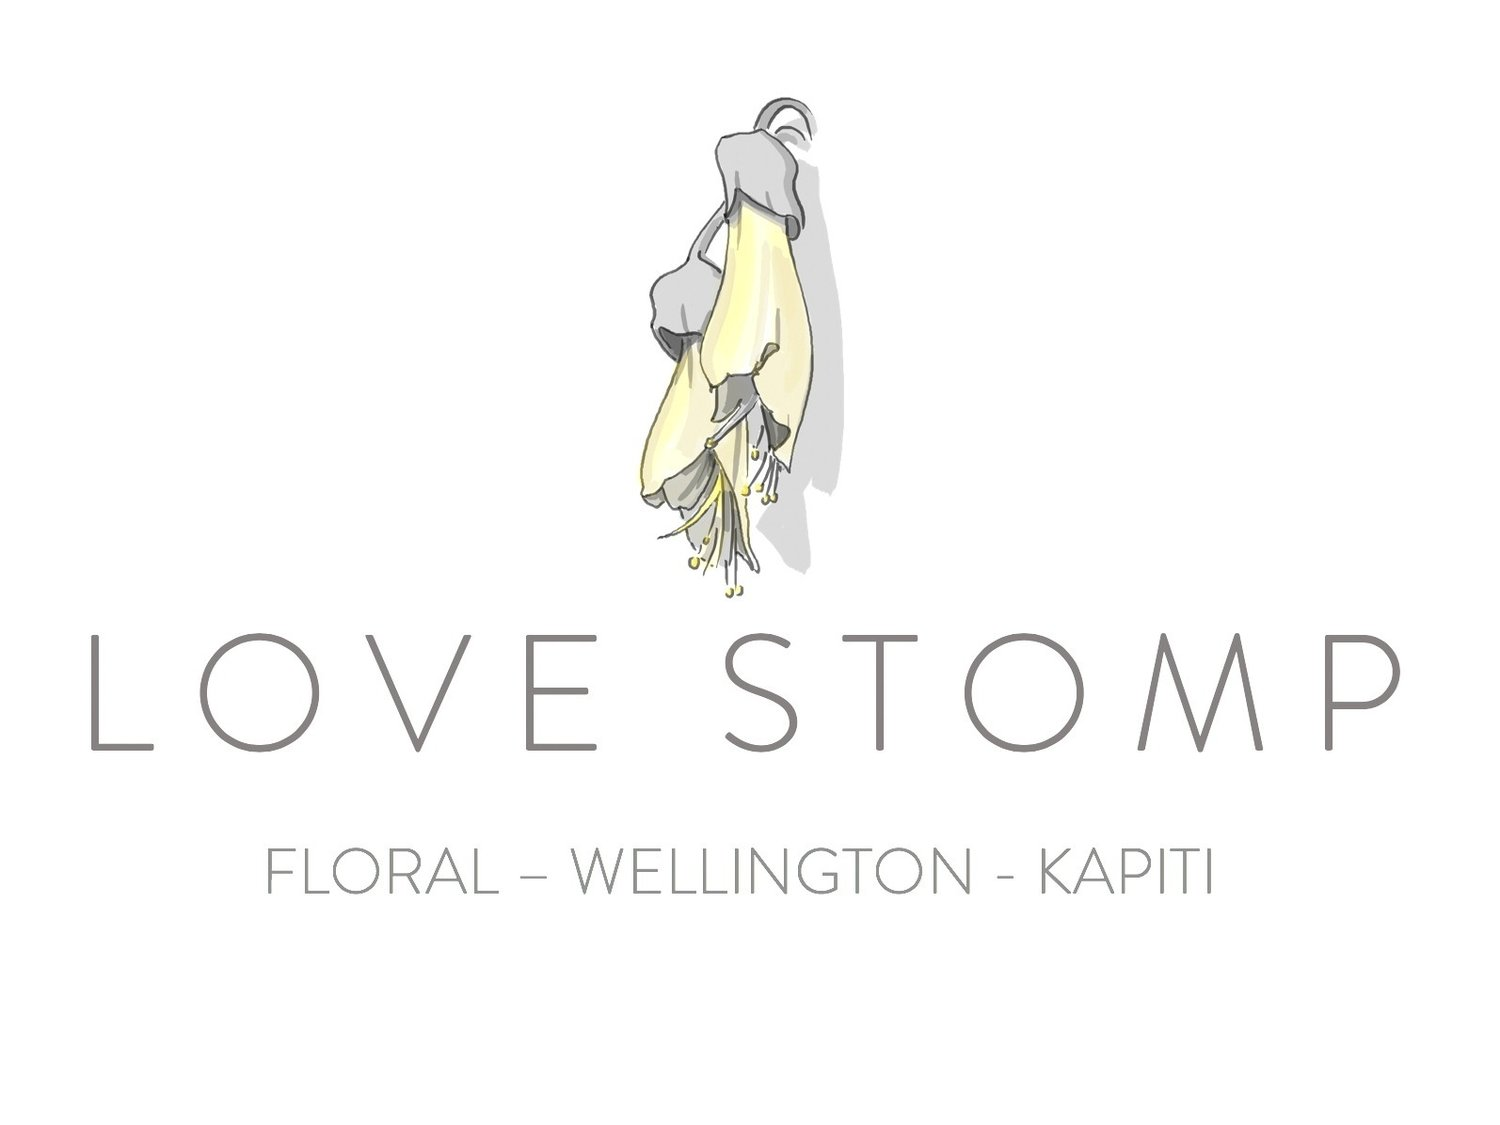 Love Stomp floral Wellington Kapiti